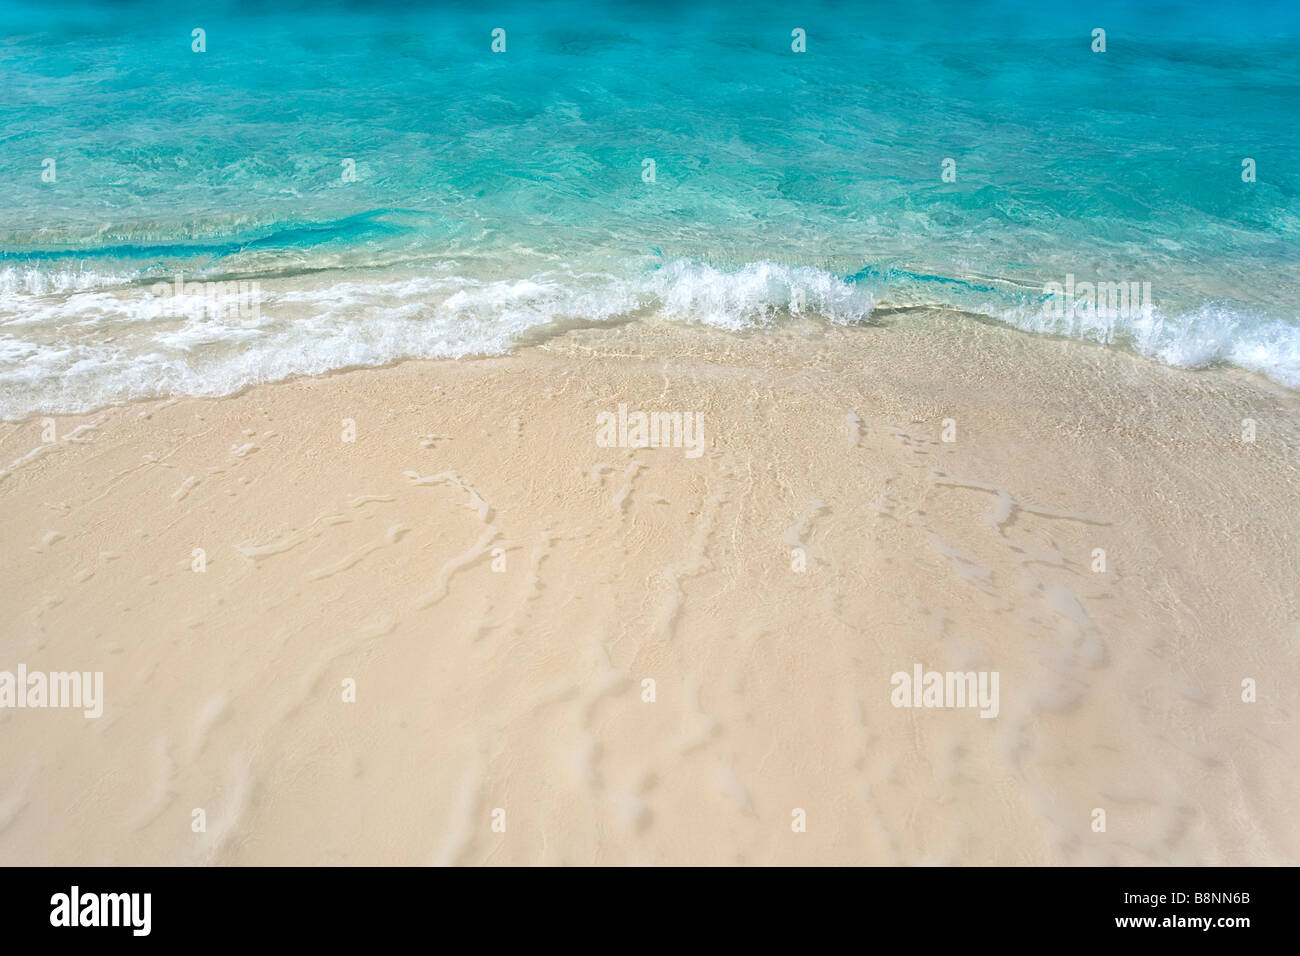 small waves on a tropical beach. - Stock Image